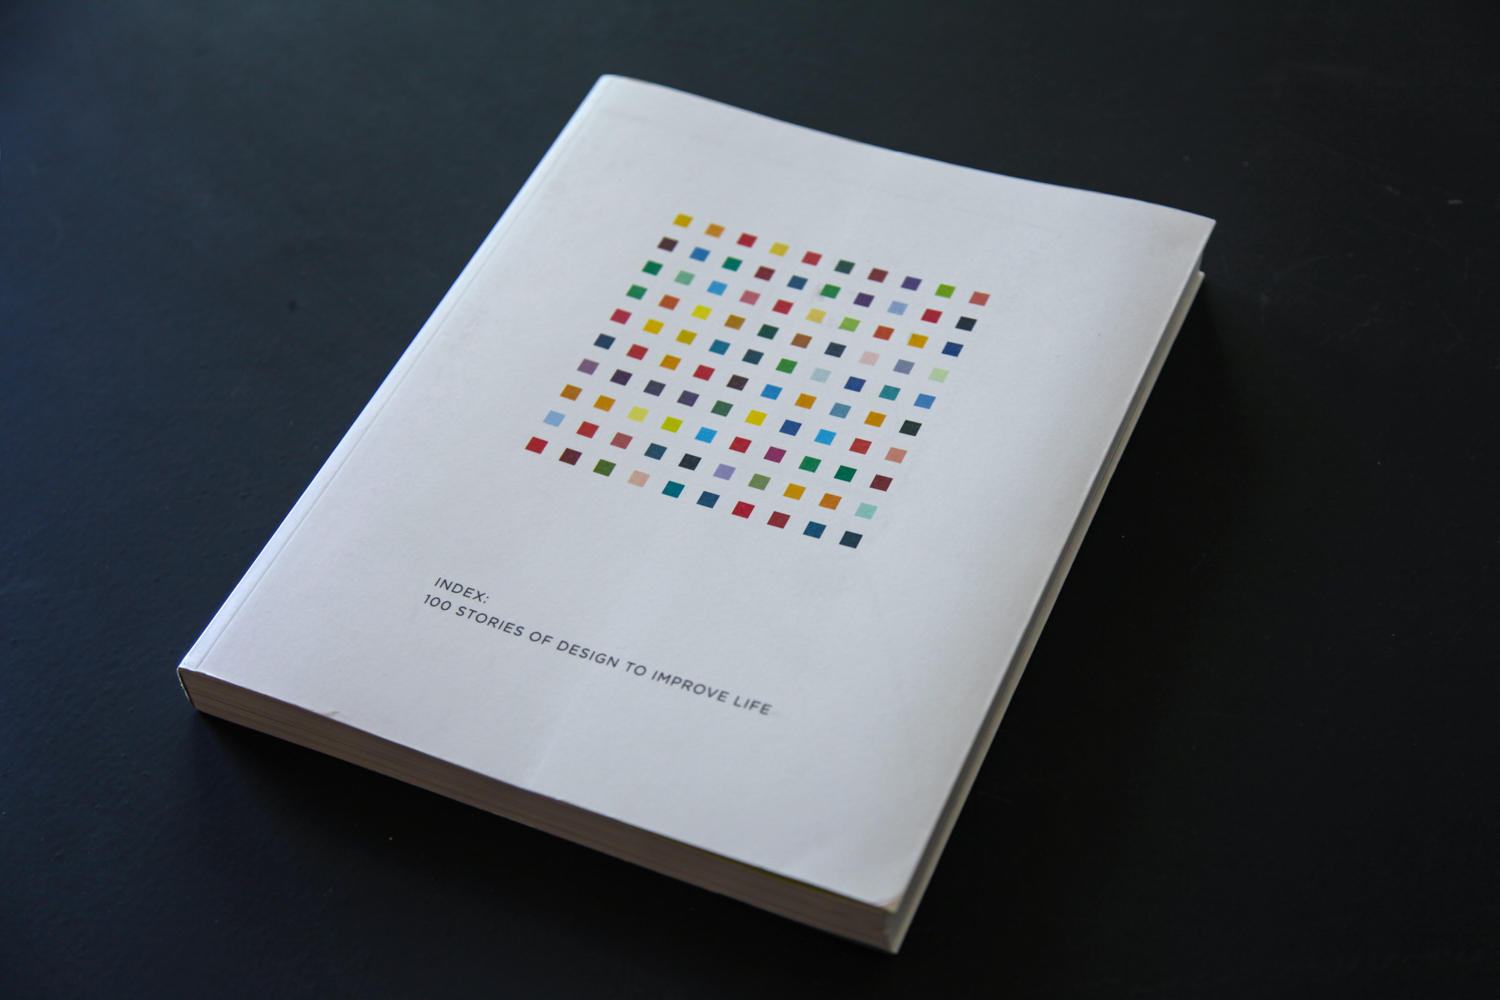 INDEX: 100 stories of design to improve life. The book about the international INDEX: Award exhibition and projects.